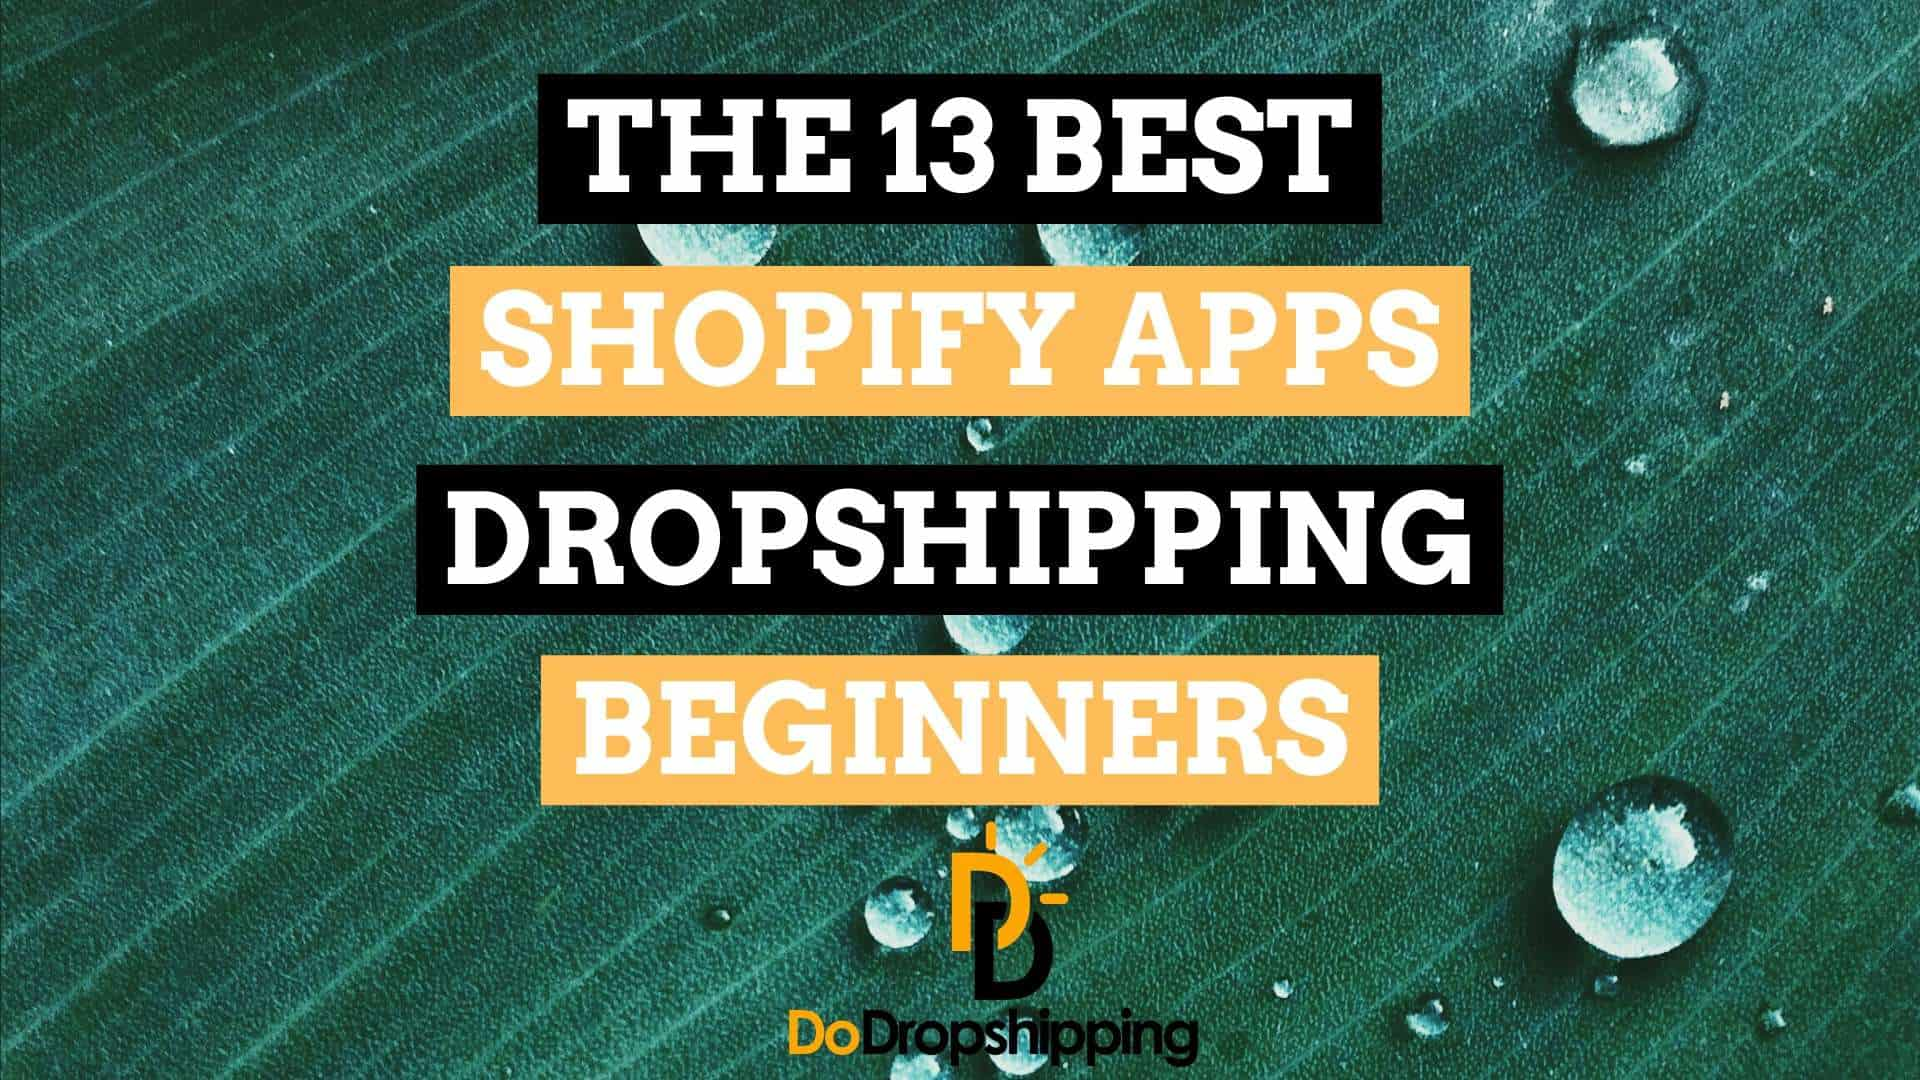 Dropshipping Beginners: The 12 Best Shopify Apps 2019 (Free and Paid)